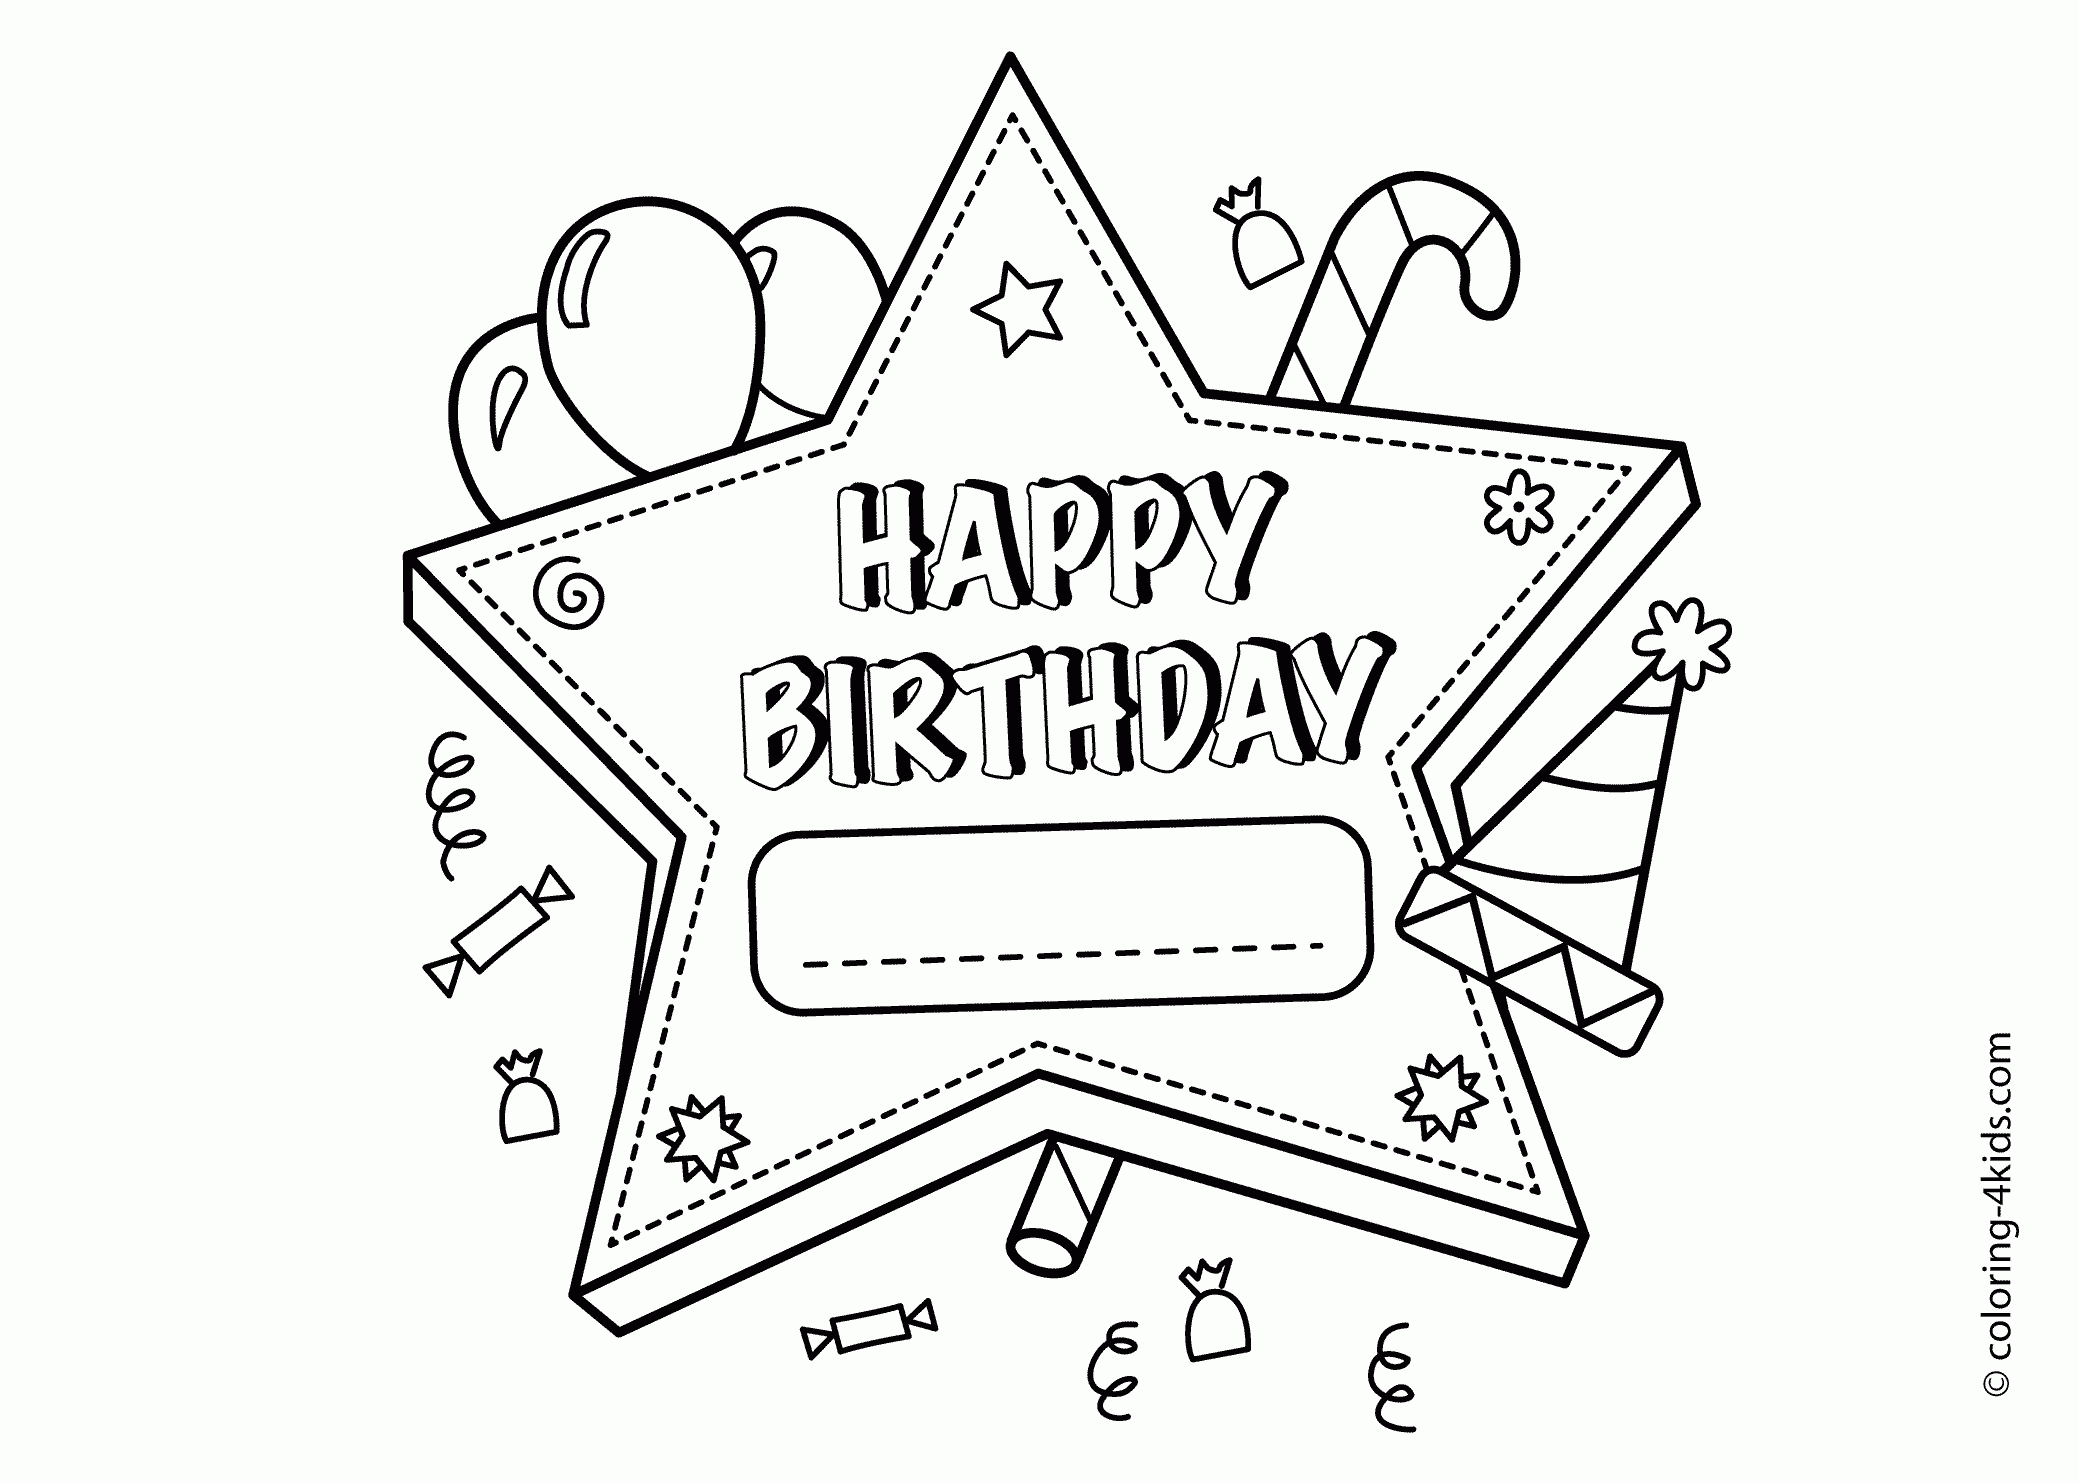 happy birthday coloring pages for girls ; happy-birthday-coloring-pages-for-friends-girls-19a